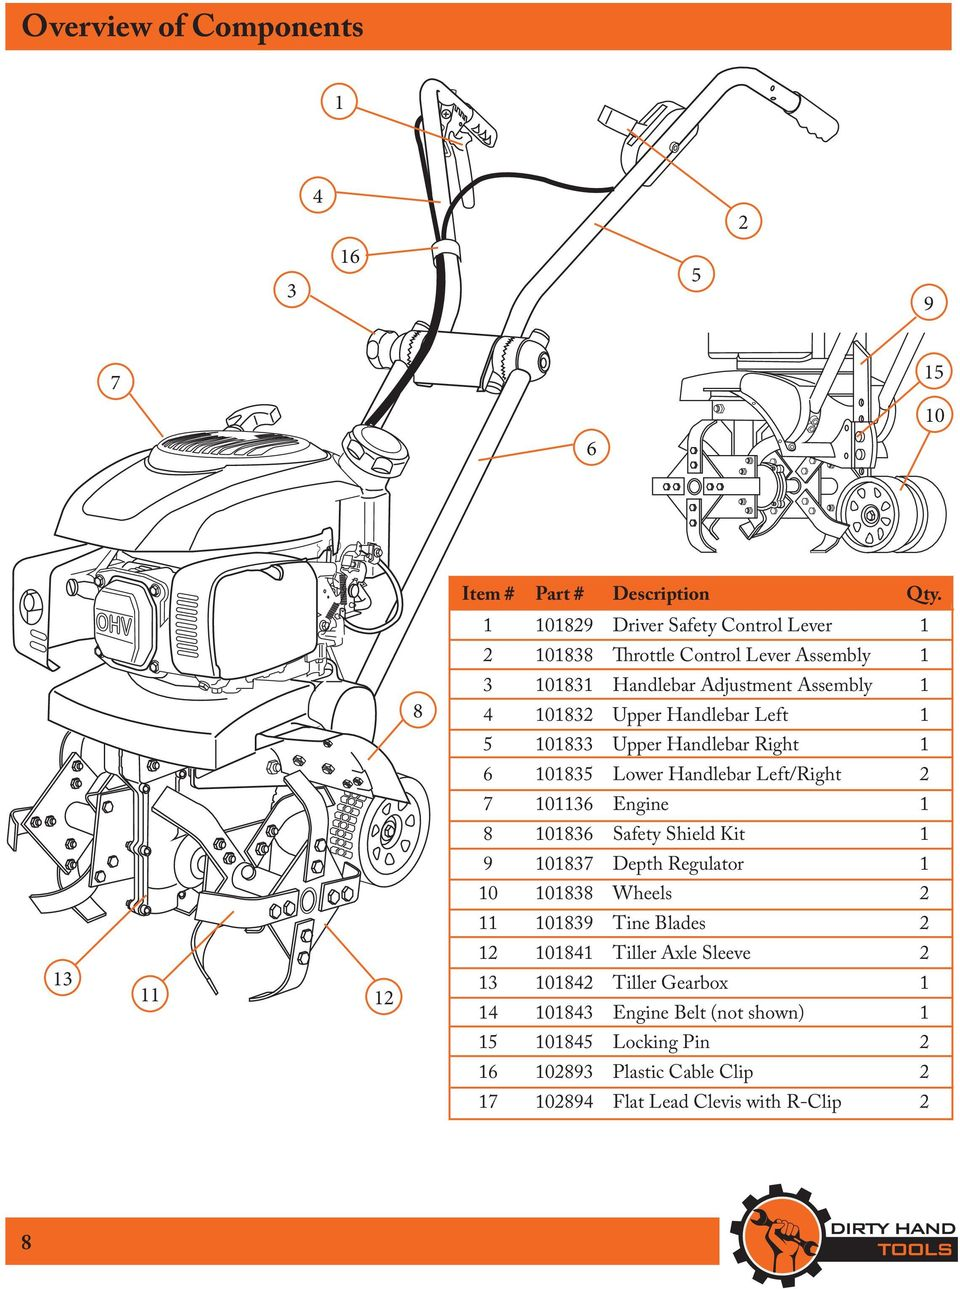 Operation Manual 15 Front Tine Tiller Model Pdf Engine Diagram 1 5 101833 Upper Handlebar Right 6 101835 Lower Left 2 7